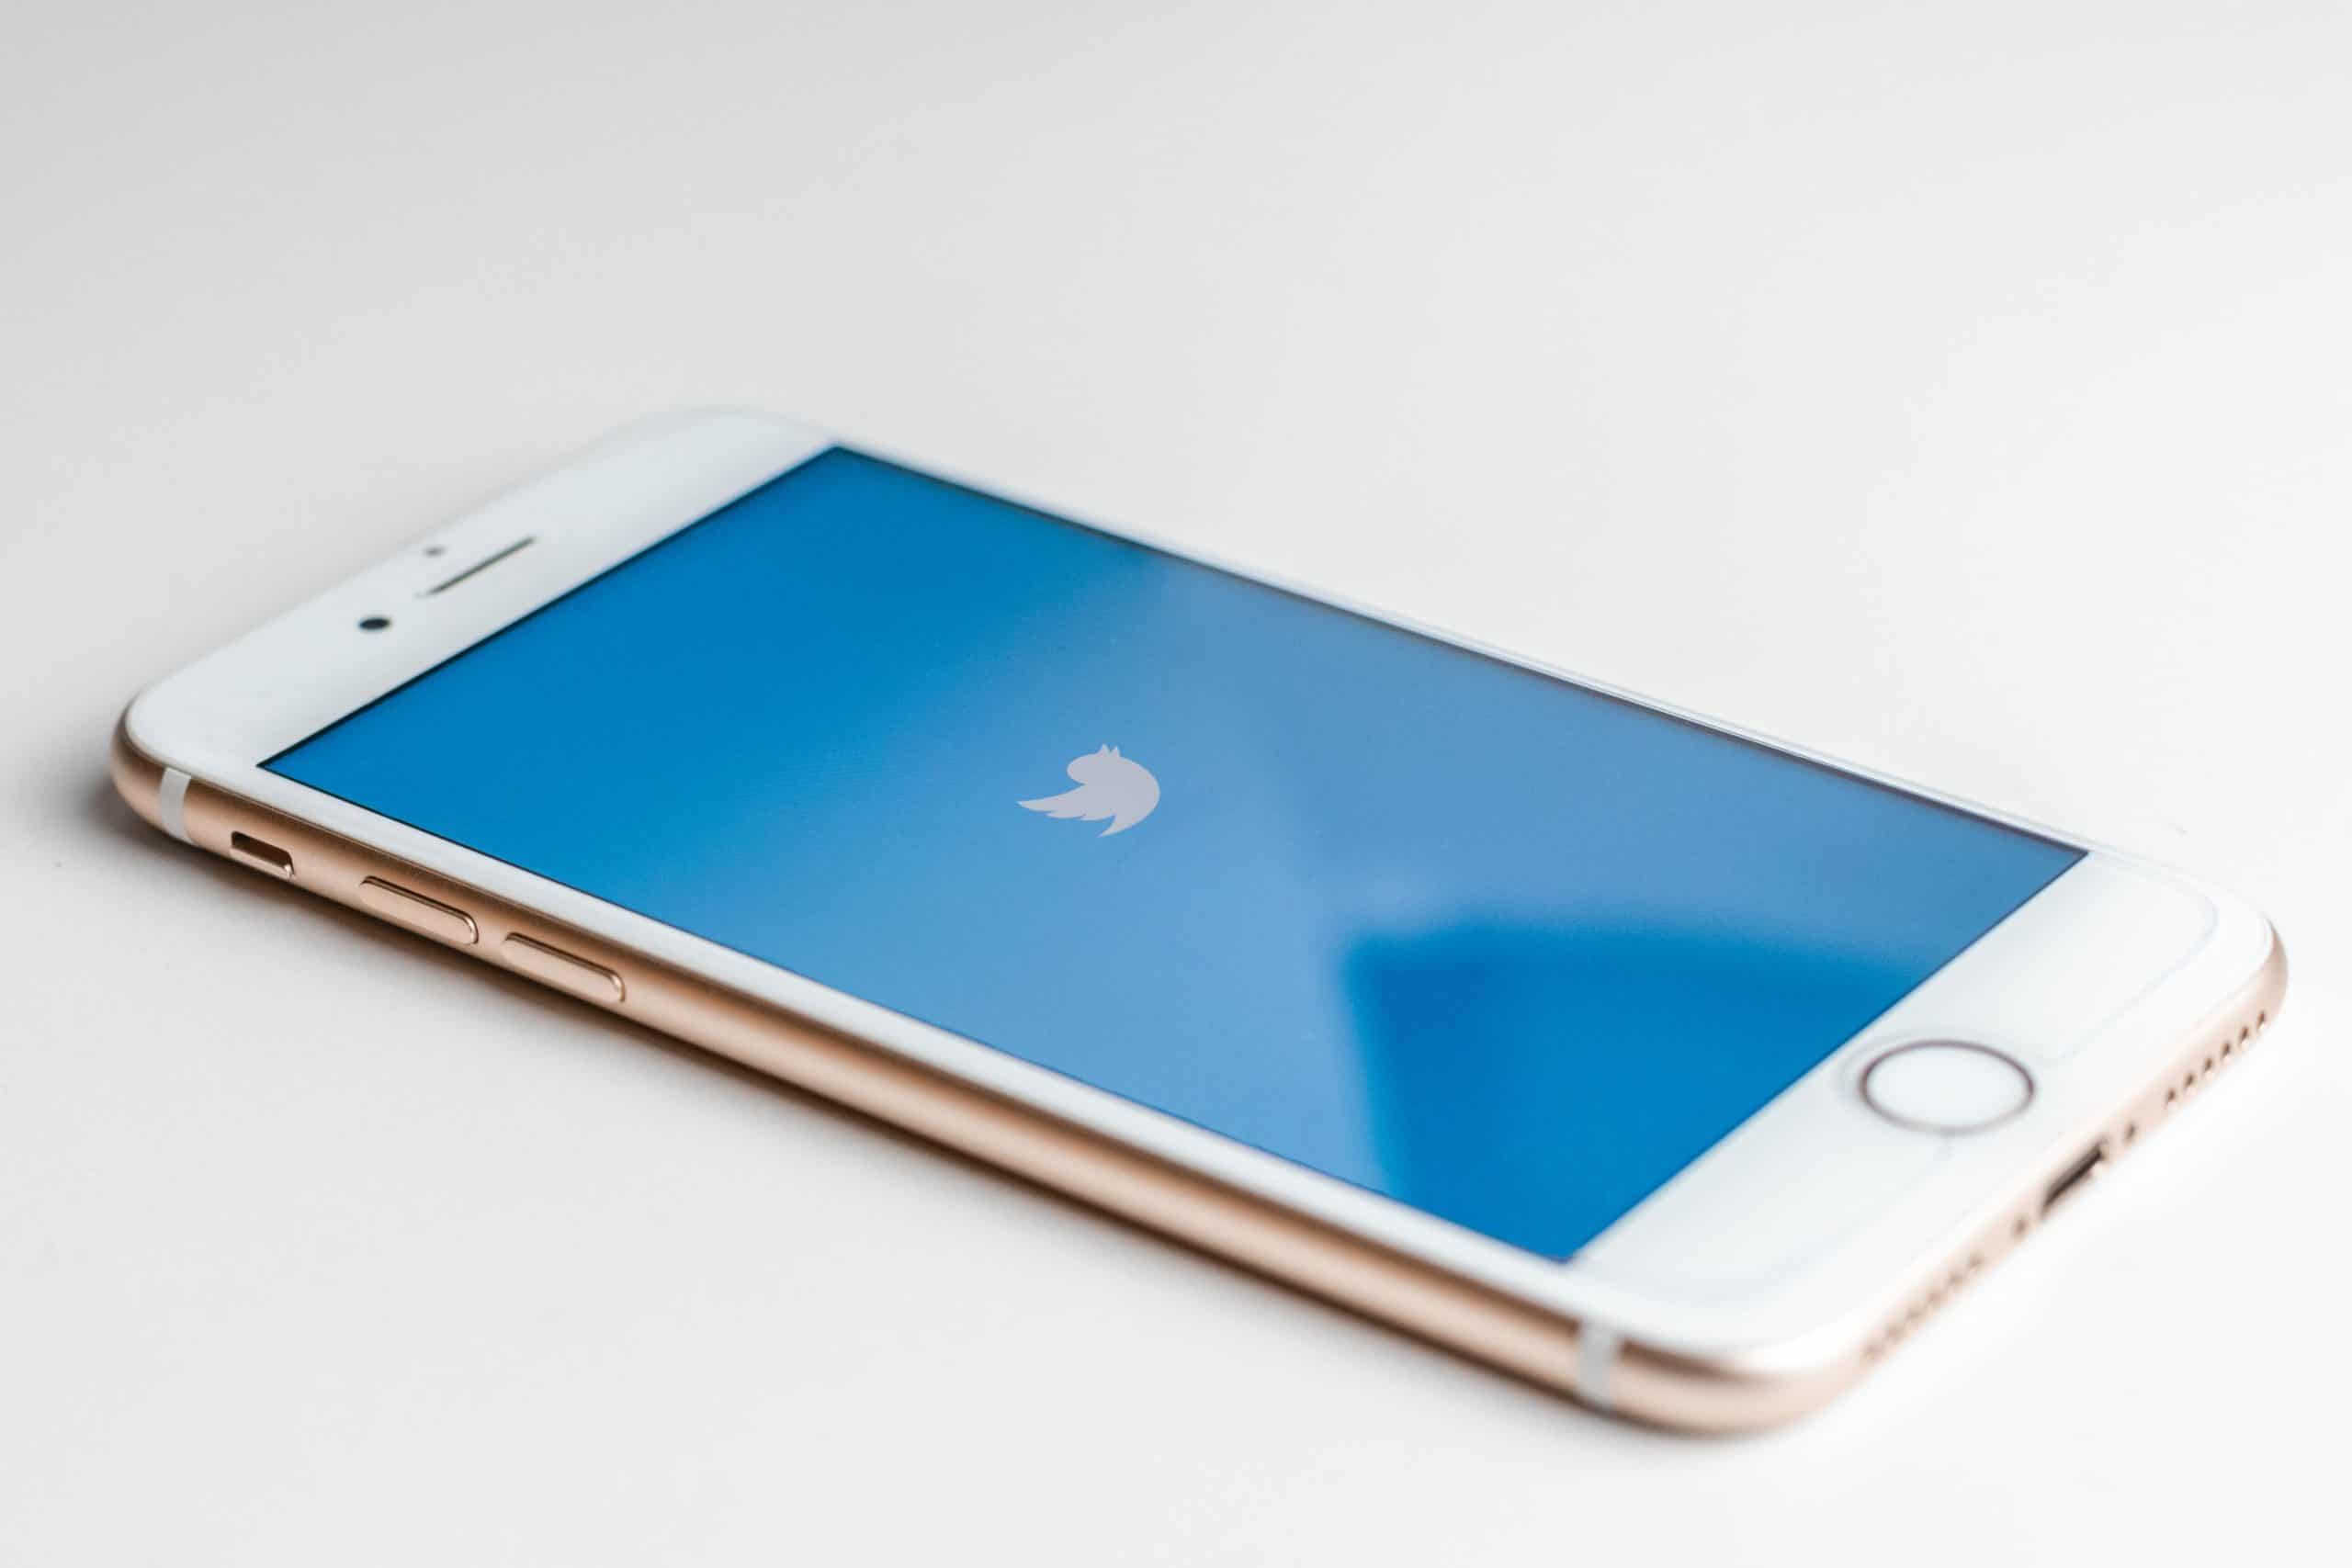 which social media platforms- phone with Twitter logo